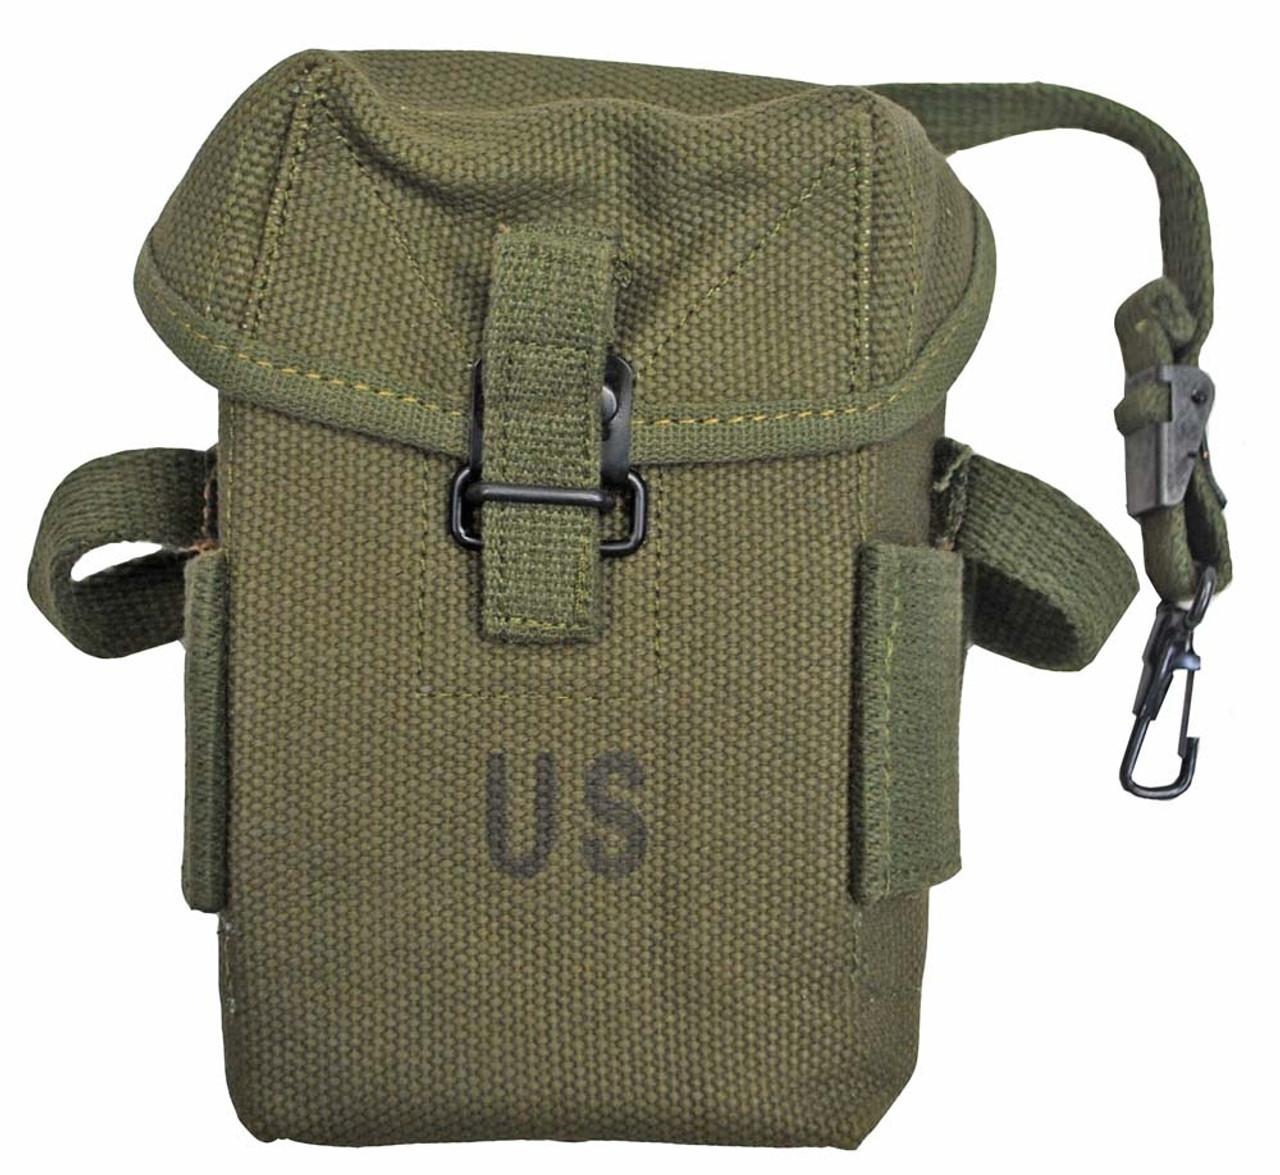 Repro Vietnam Era US Army M-56 Universal Ammo Pouch - New from Hessen Antique